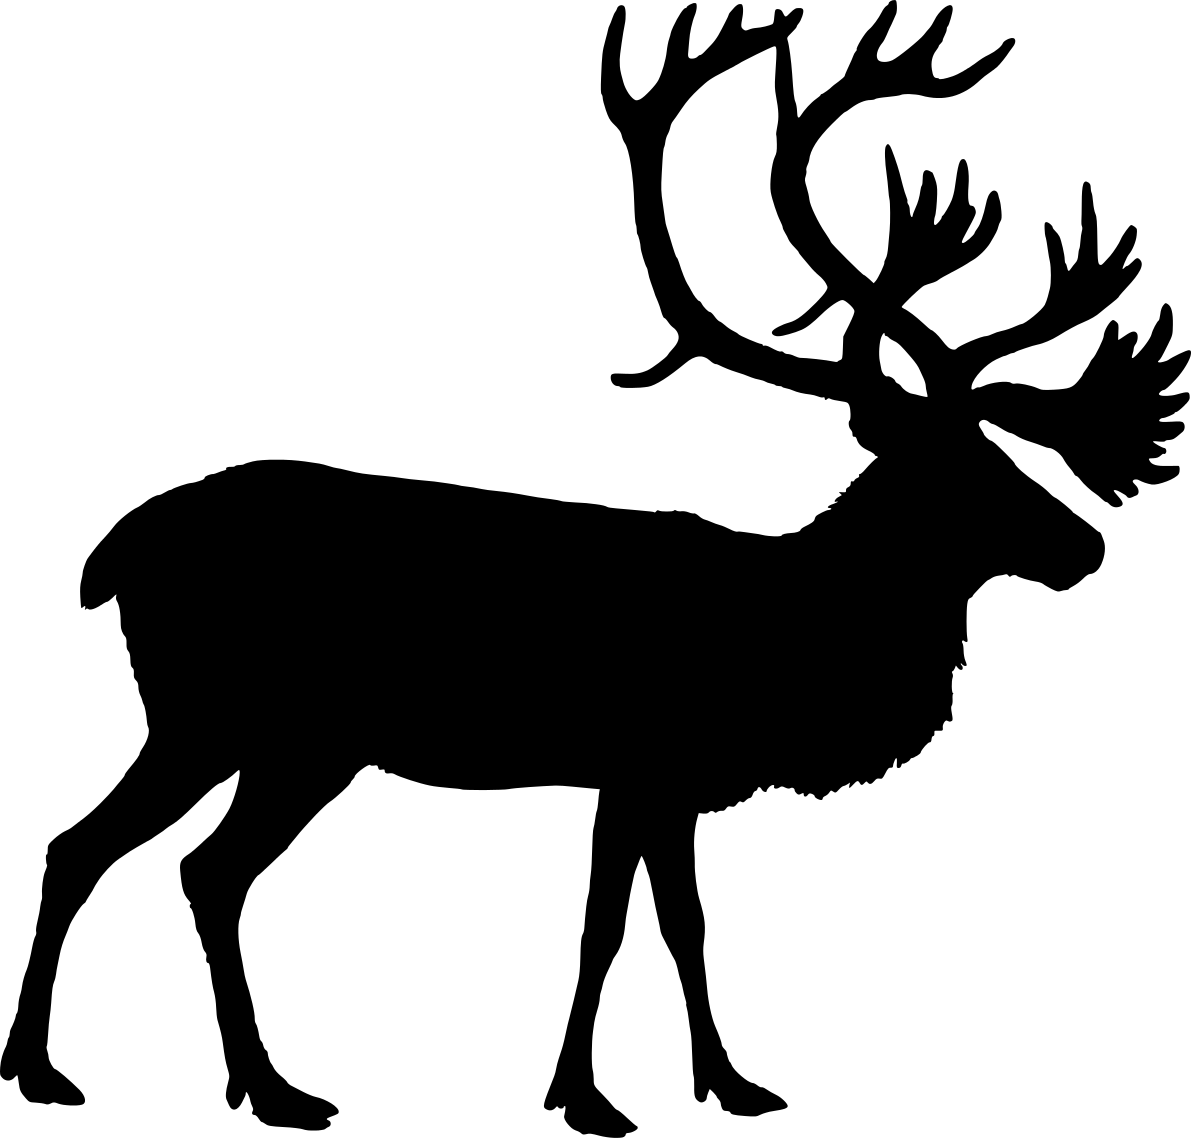 1192x1138 Best Photos Of Reindeer Head Silhouette